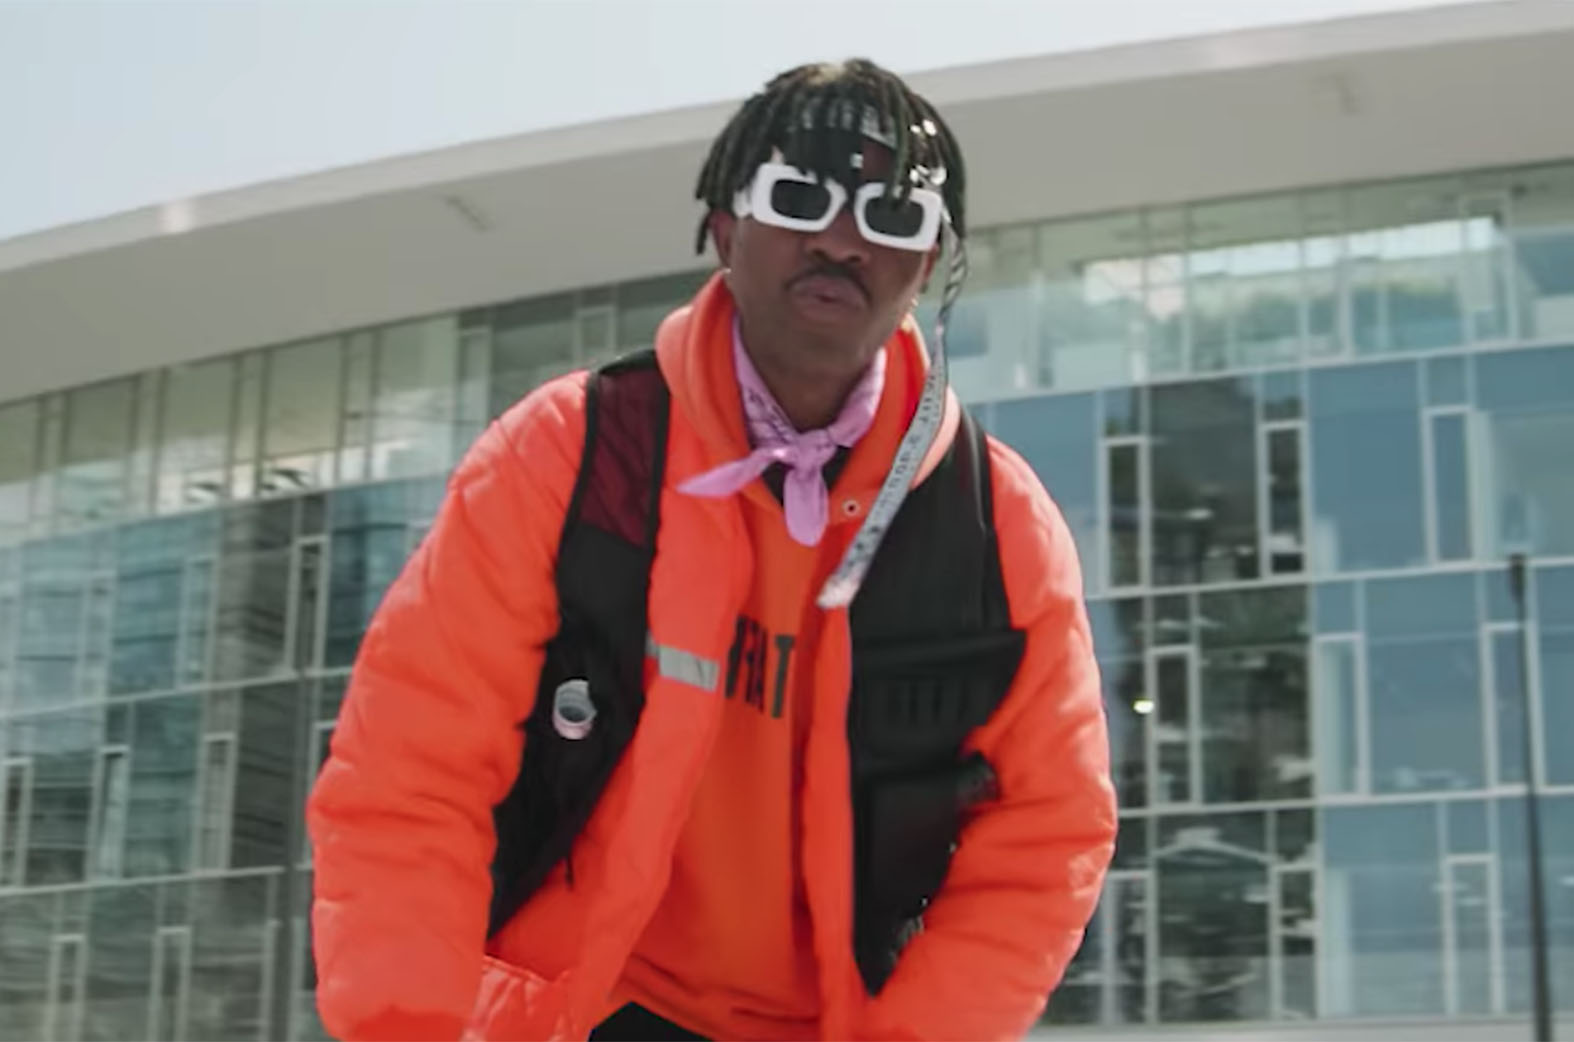 Video: Whot by Kvy Rhymes